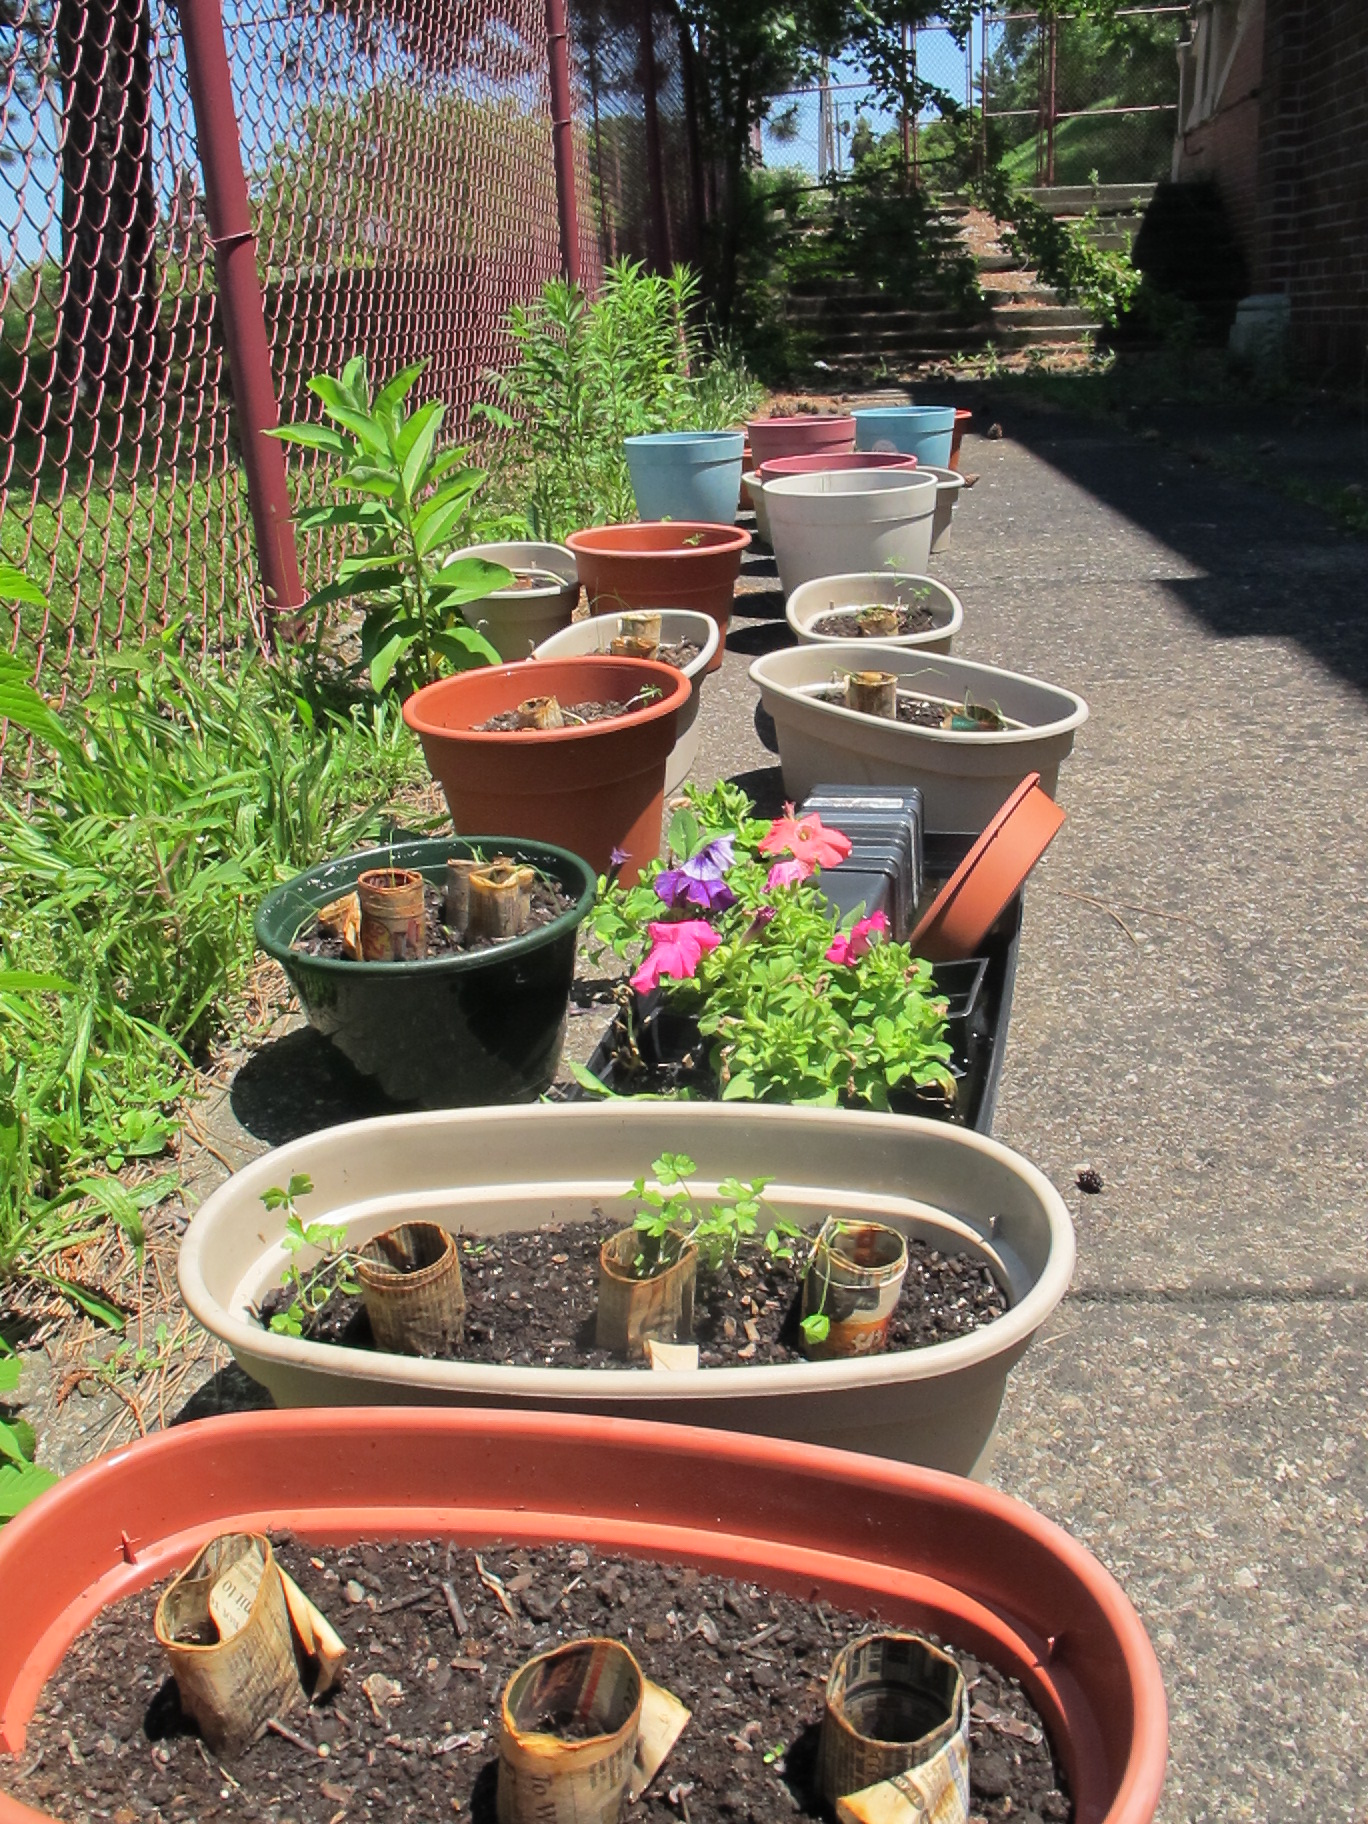 current potted plants